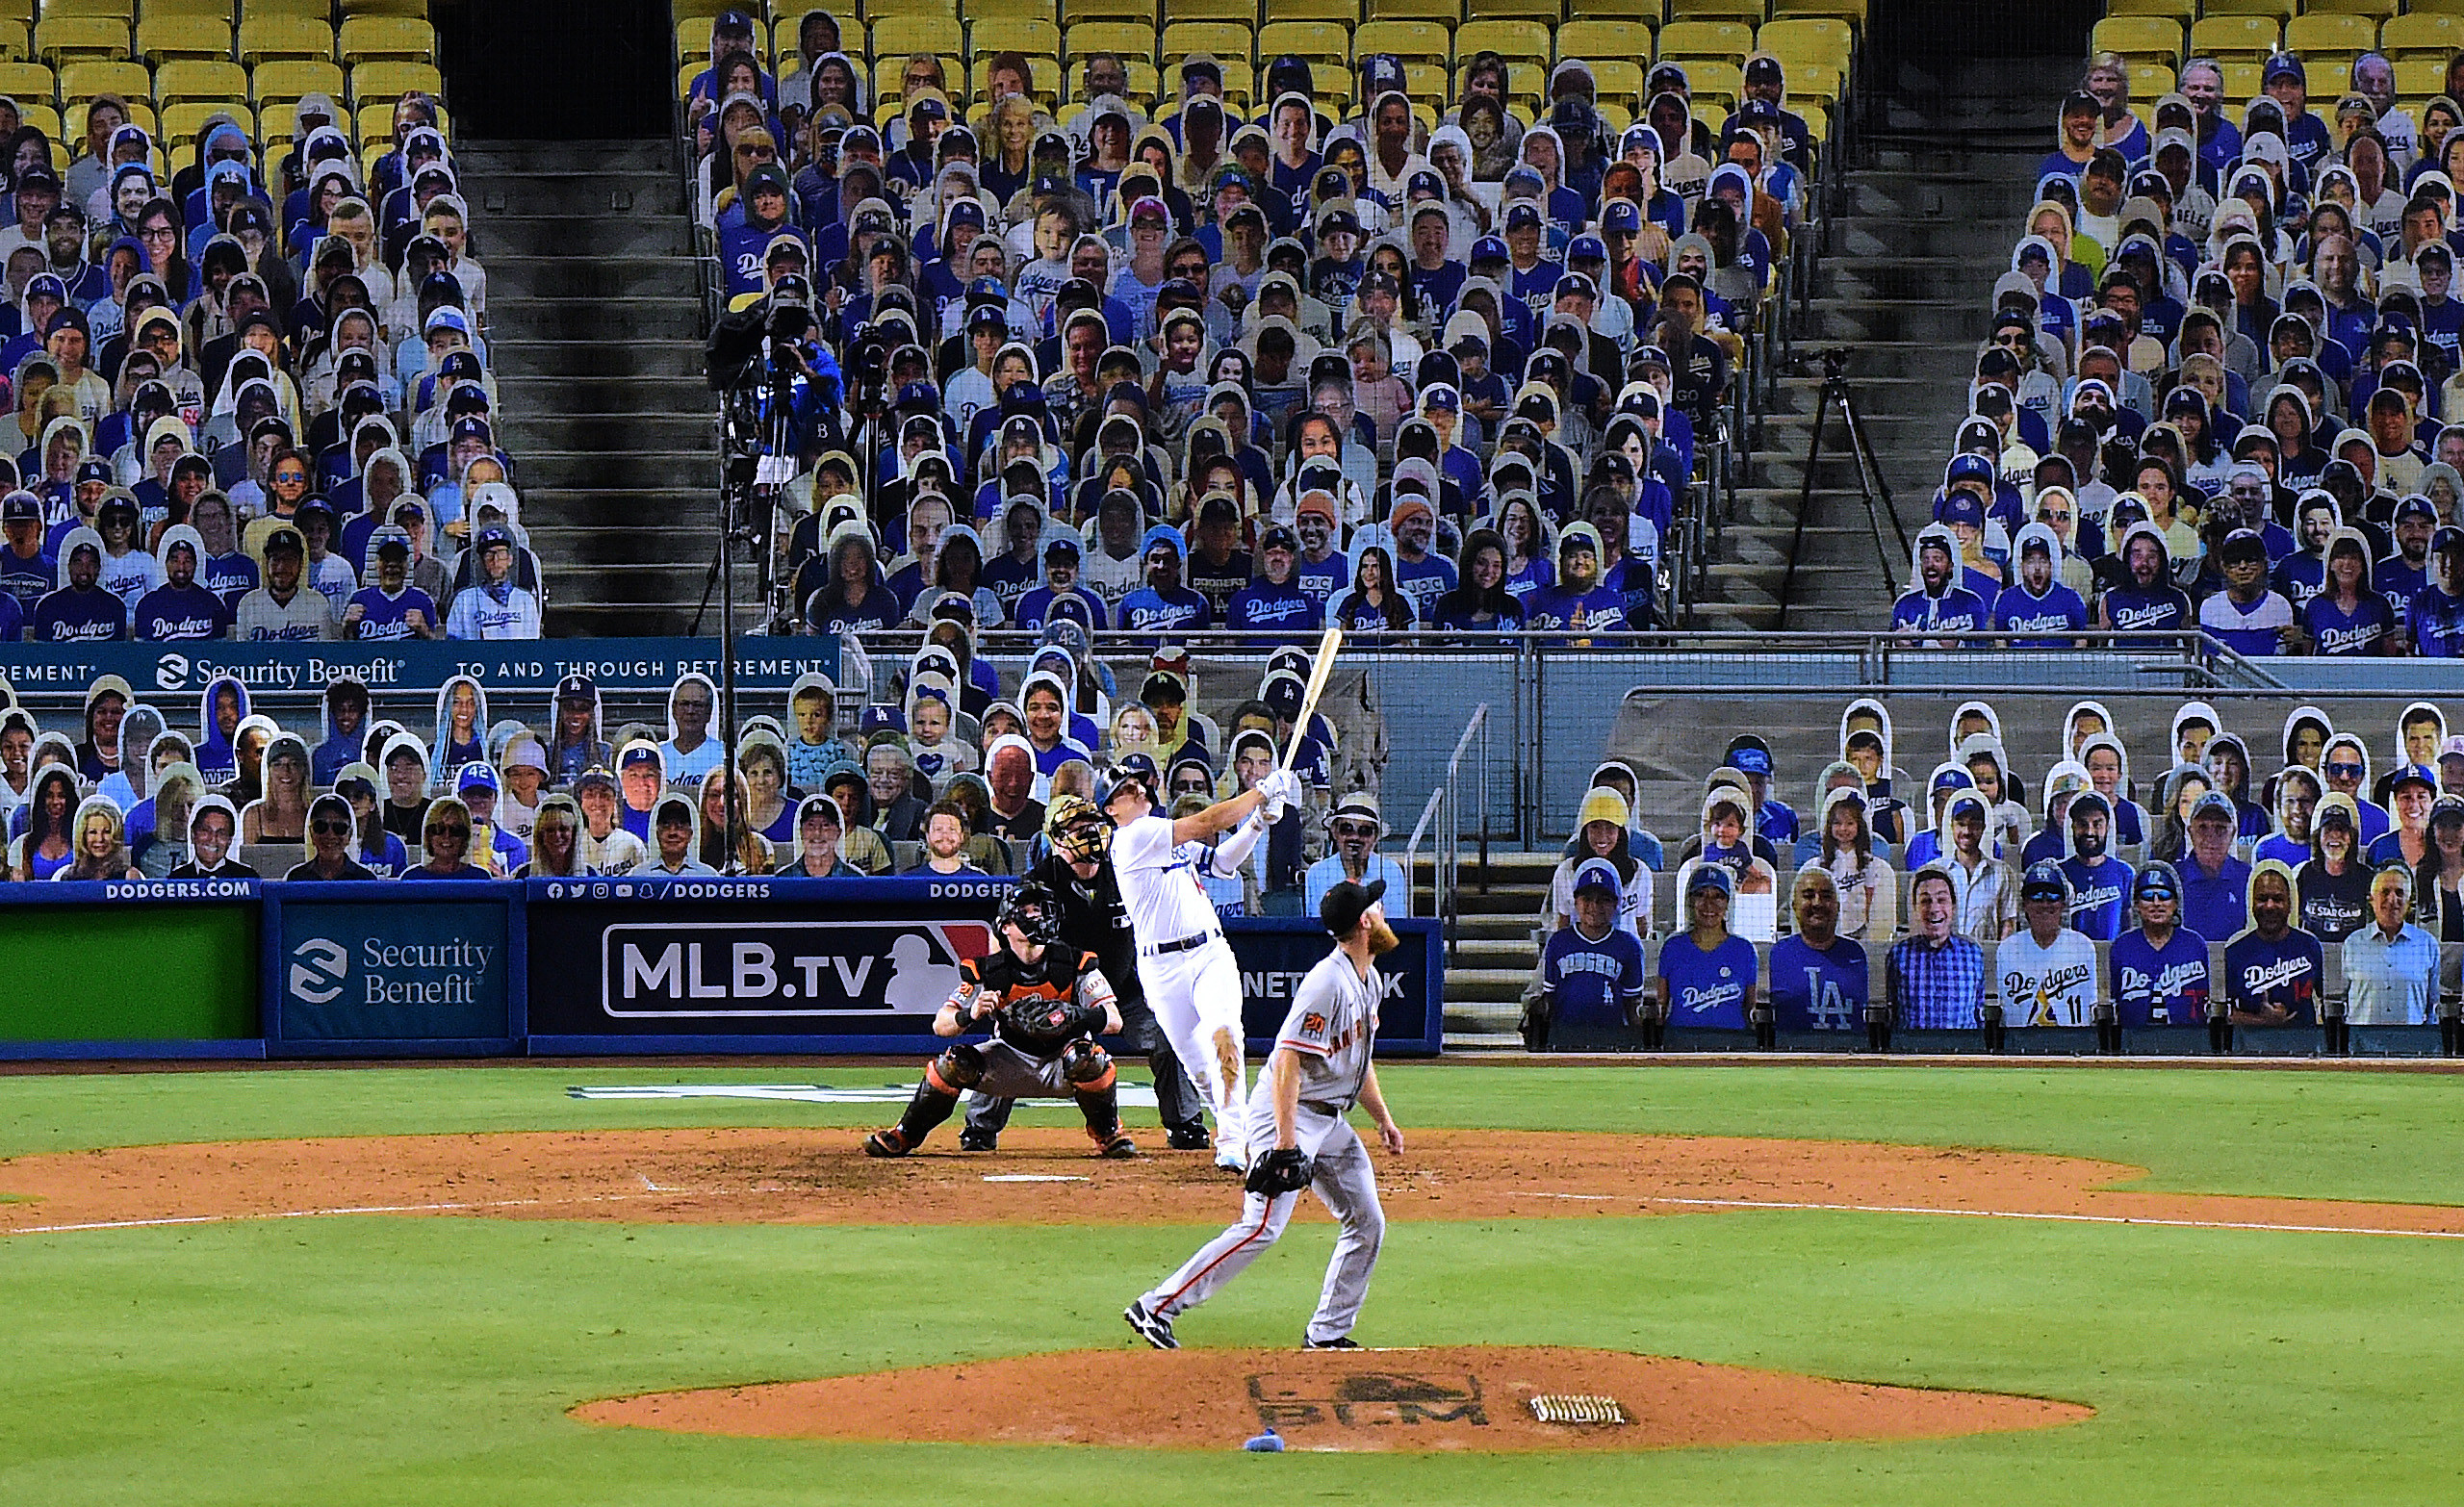 Hernandez hits the baseball while behind him the stadium is filled with cutouts of people in the stands